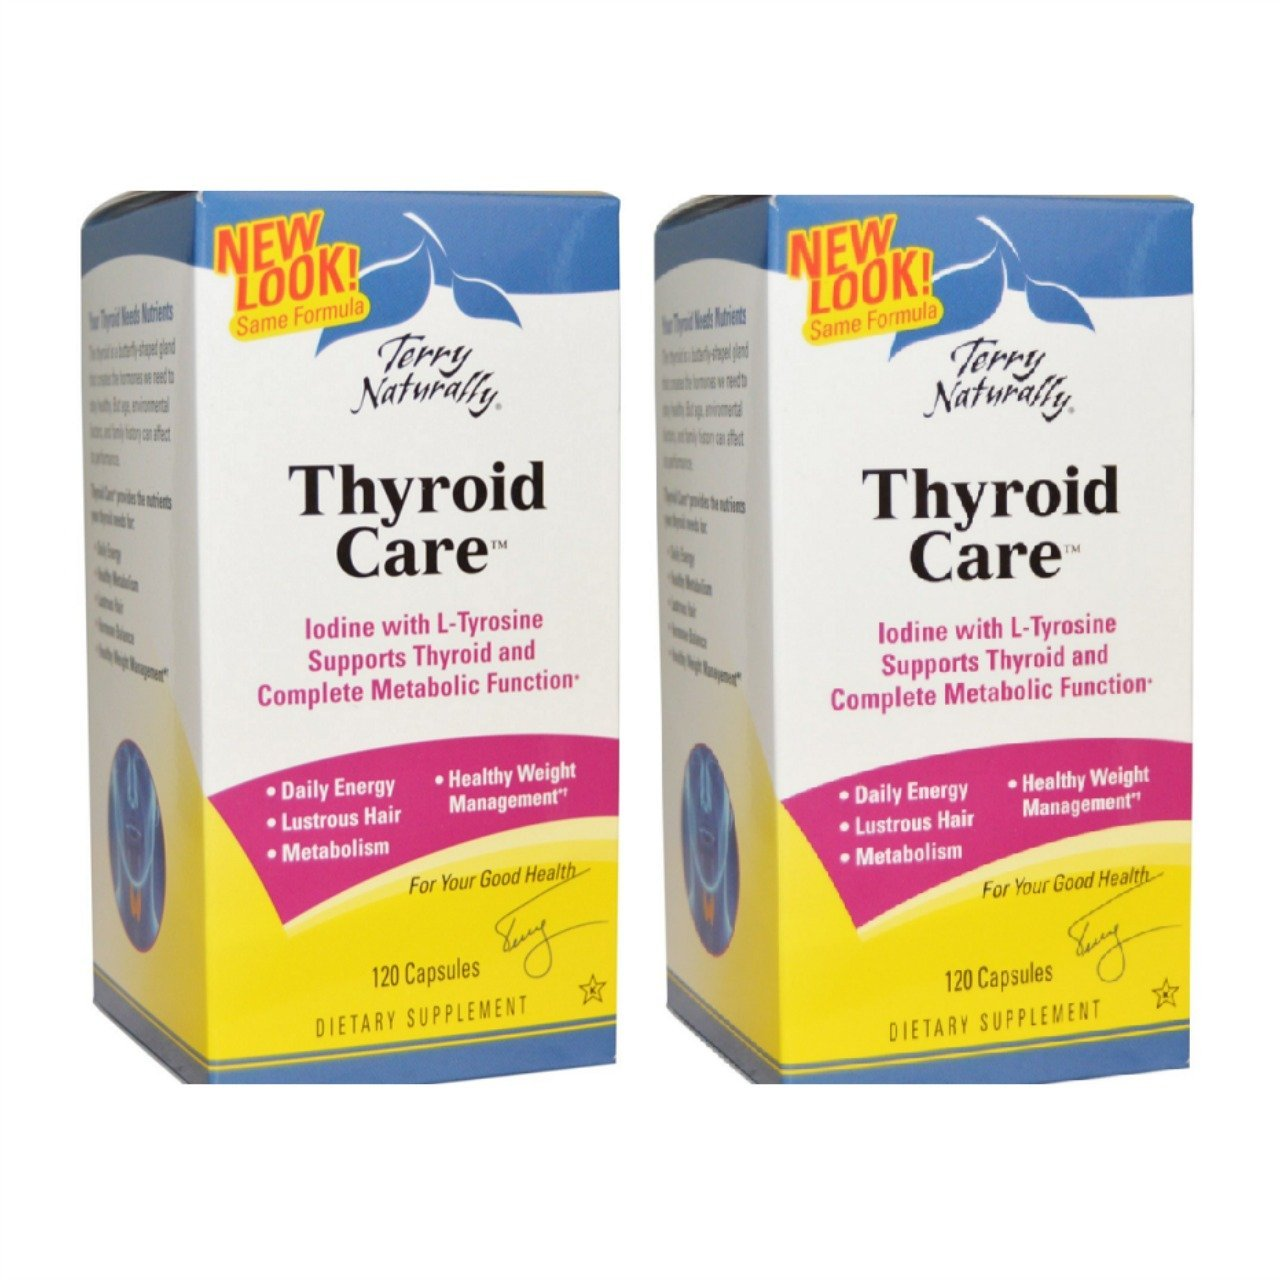 EuroPharma Terry Naturally -Thyroid Care |120 Capsules -2 Pack by Terry Naturally (Image #1)